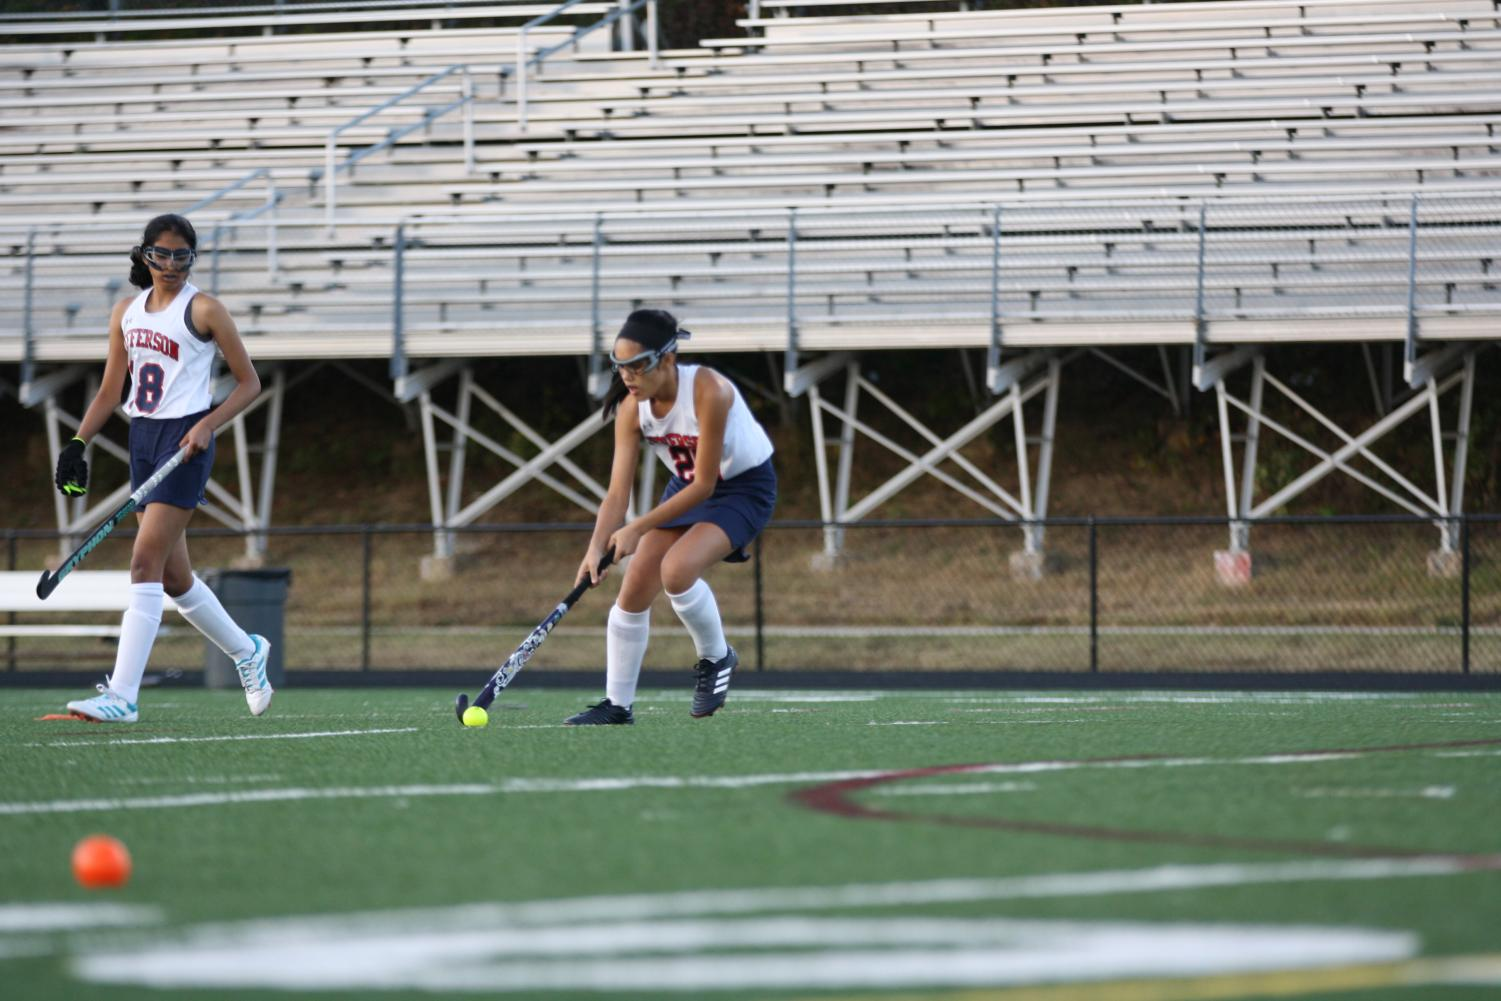 """Jefferson players warmed up and practiced for an hour before the game even began.. """"I am proud of my players, each and every game. They go out there and give it their all, regardless of the opponent we are competing against,""""  said Coach Brittany."""